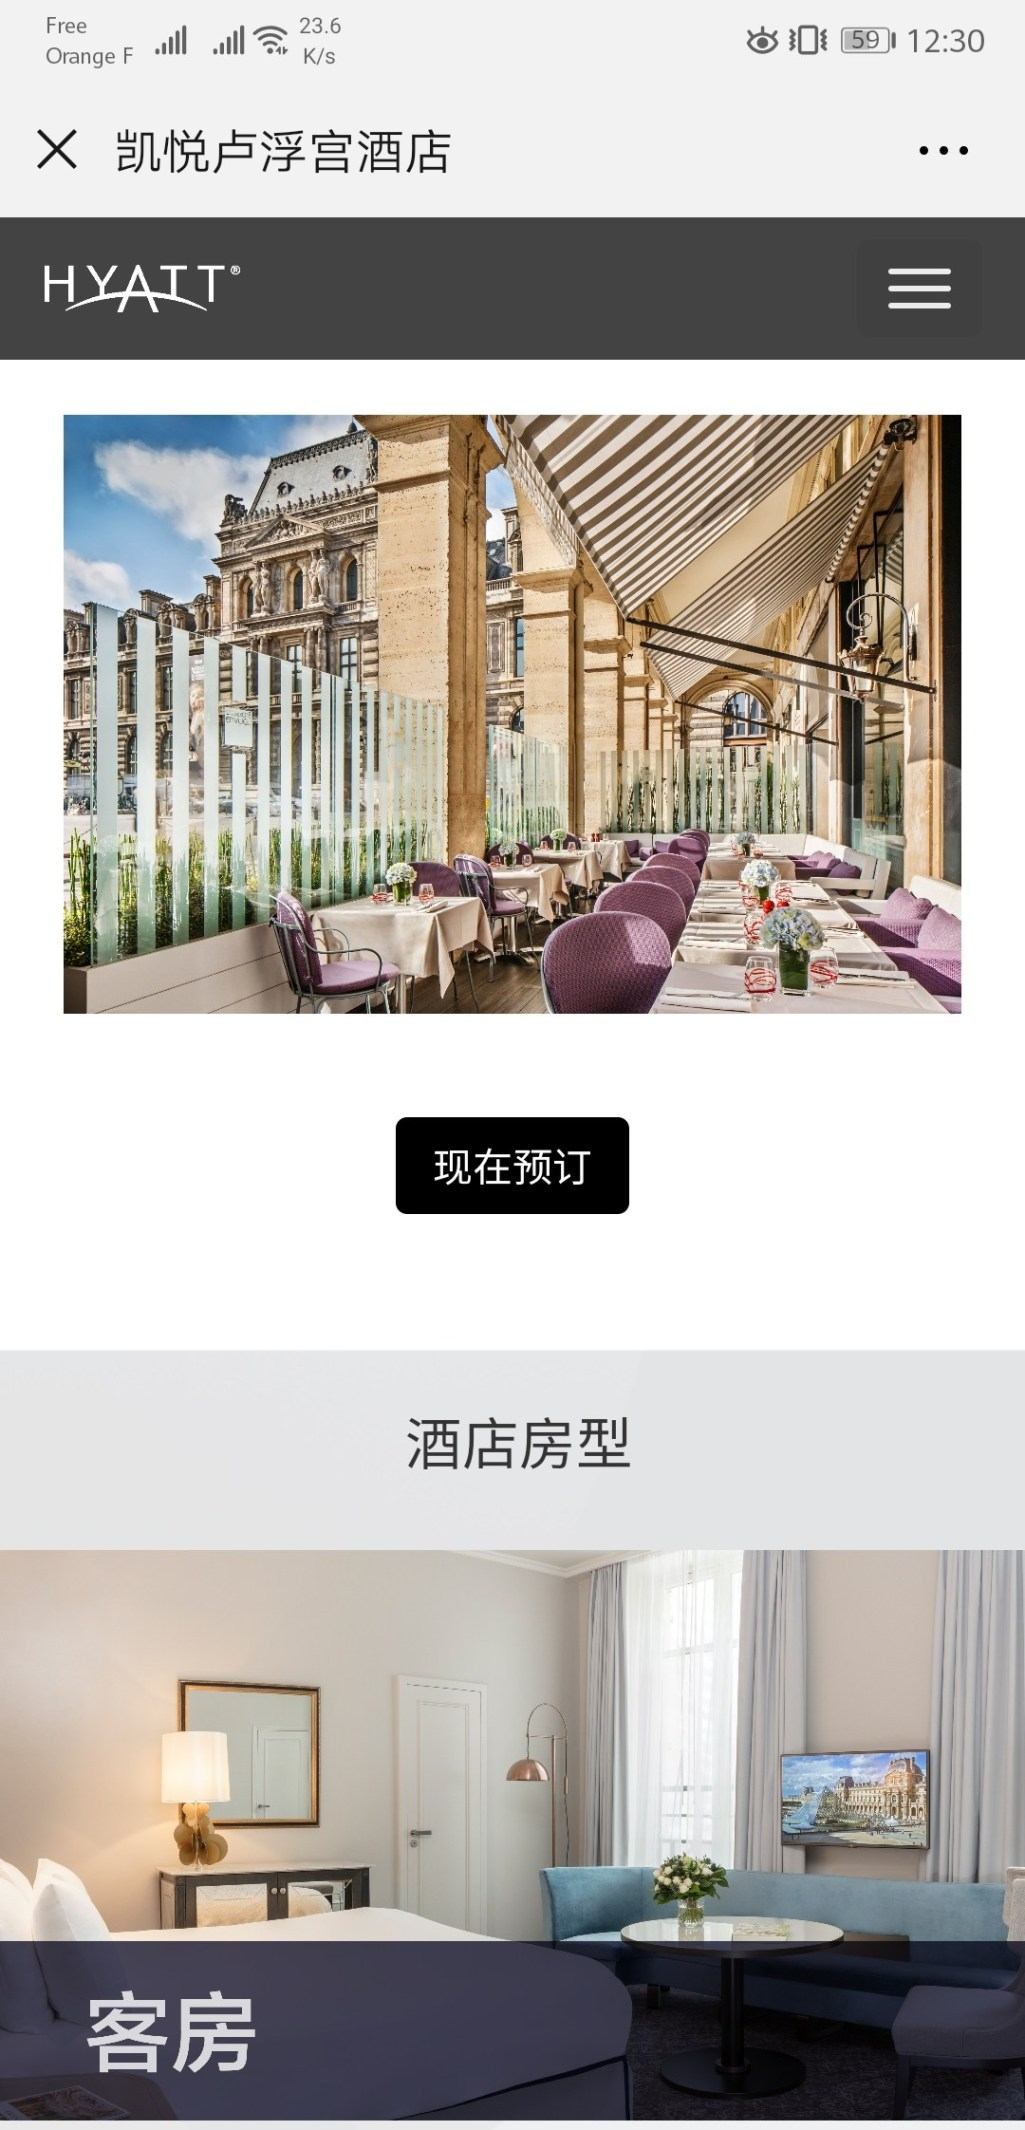 Wechat Service for Hospitality - EuroPass